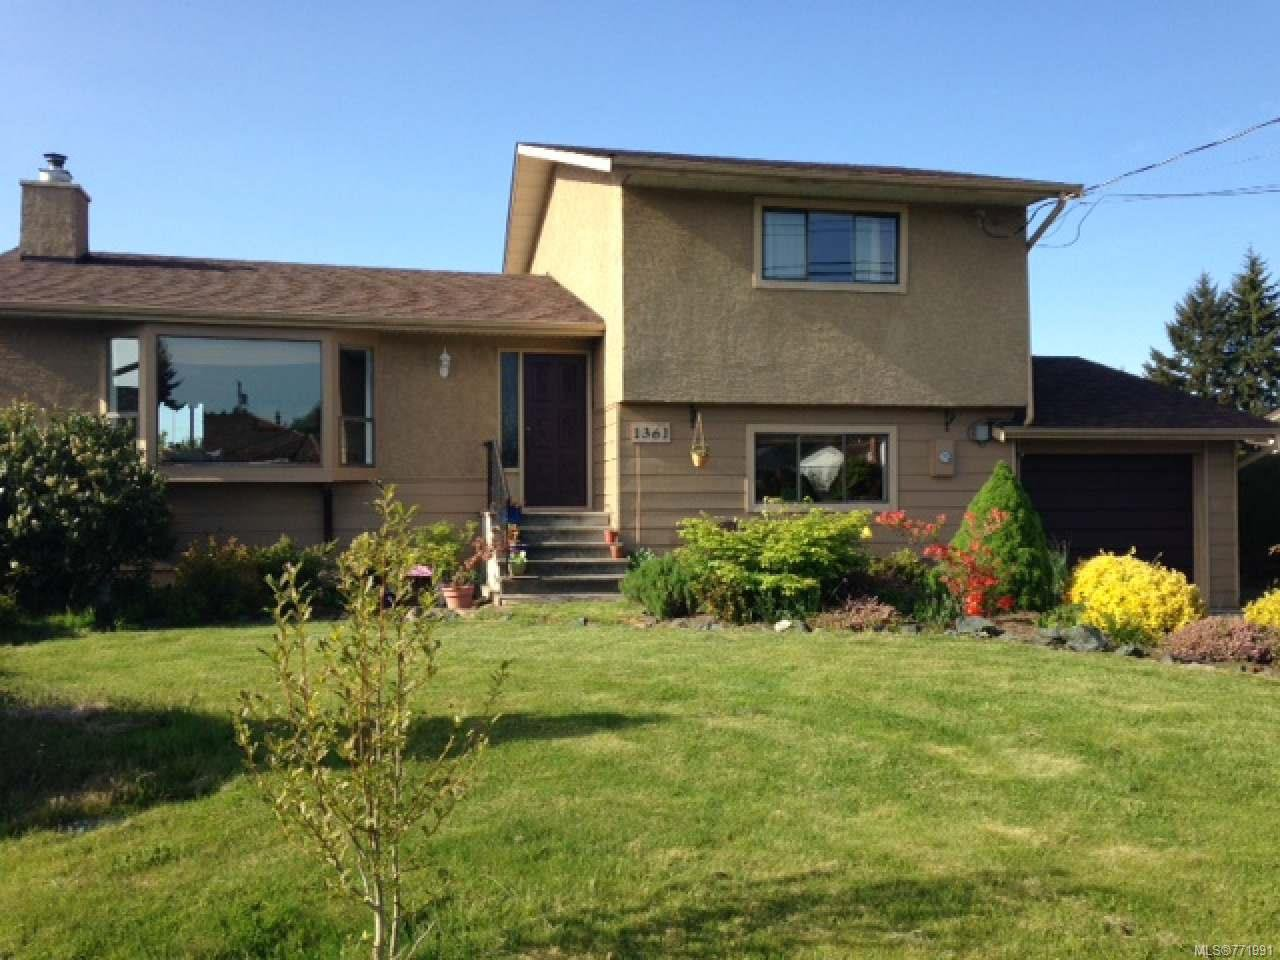 Main Photo: 1361 Greenwood Way in PARKSVILLE: PQ French Creek House for sale (Parksville/Qualicum)  : MLS®# 771991